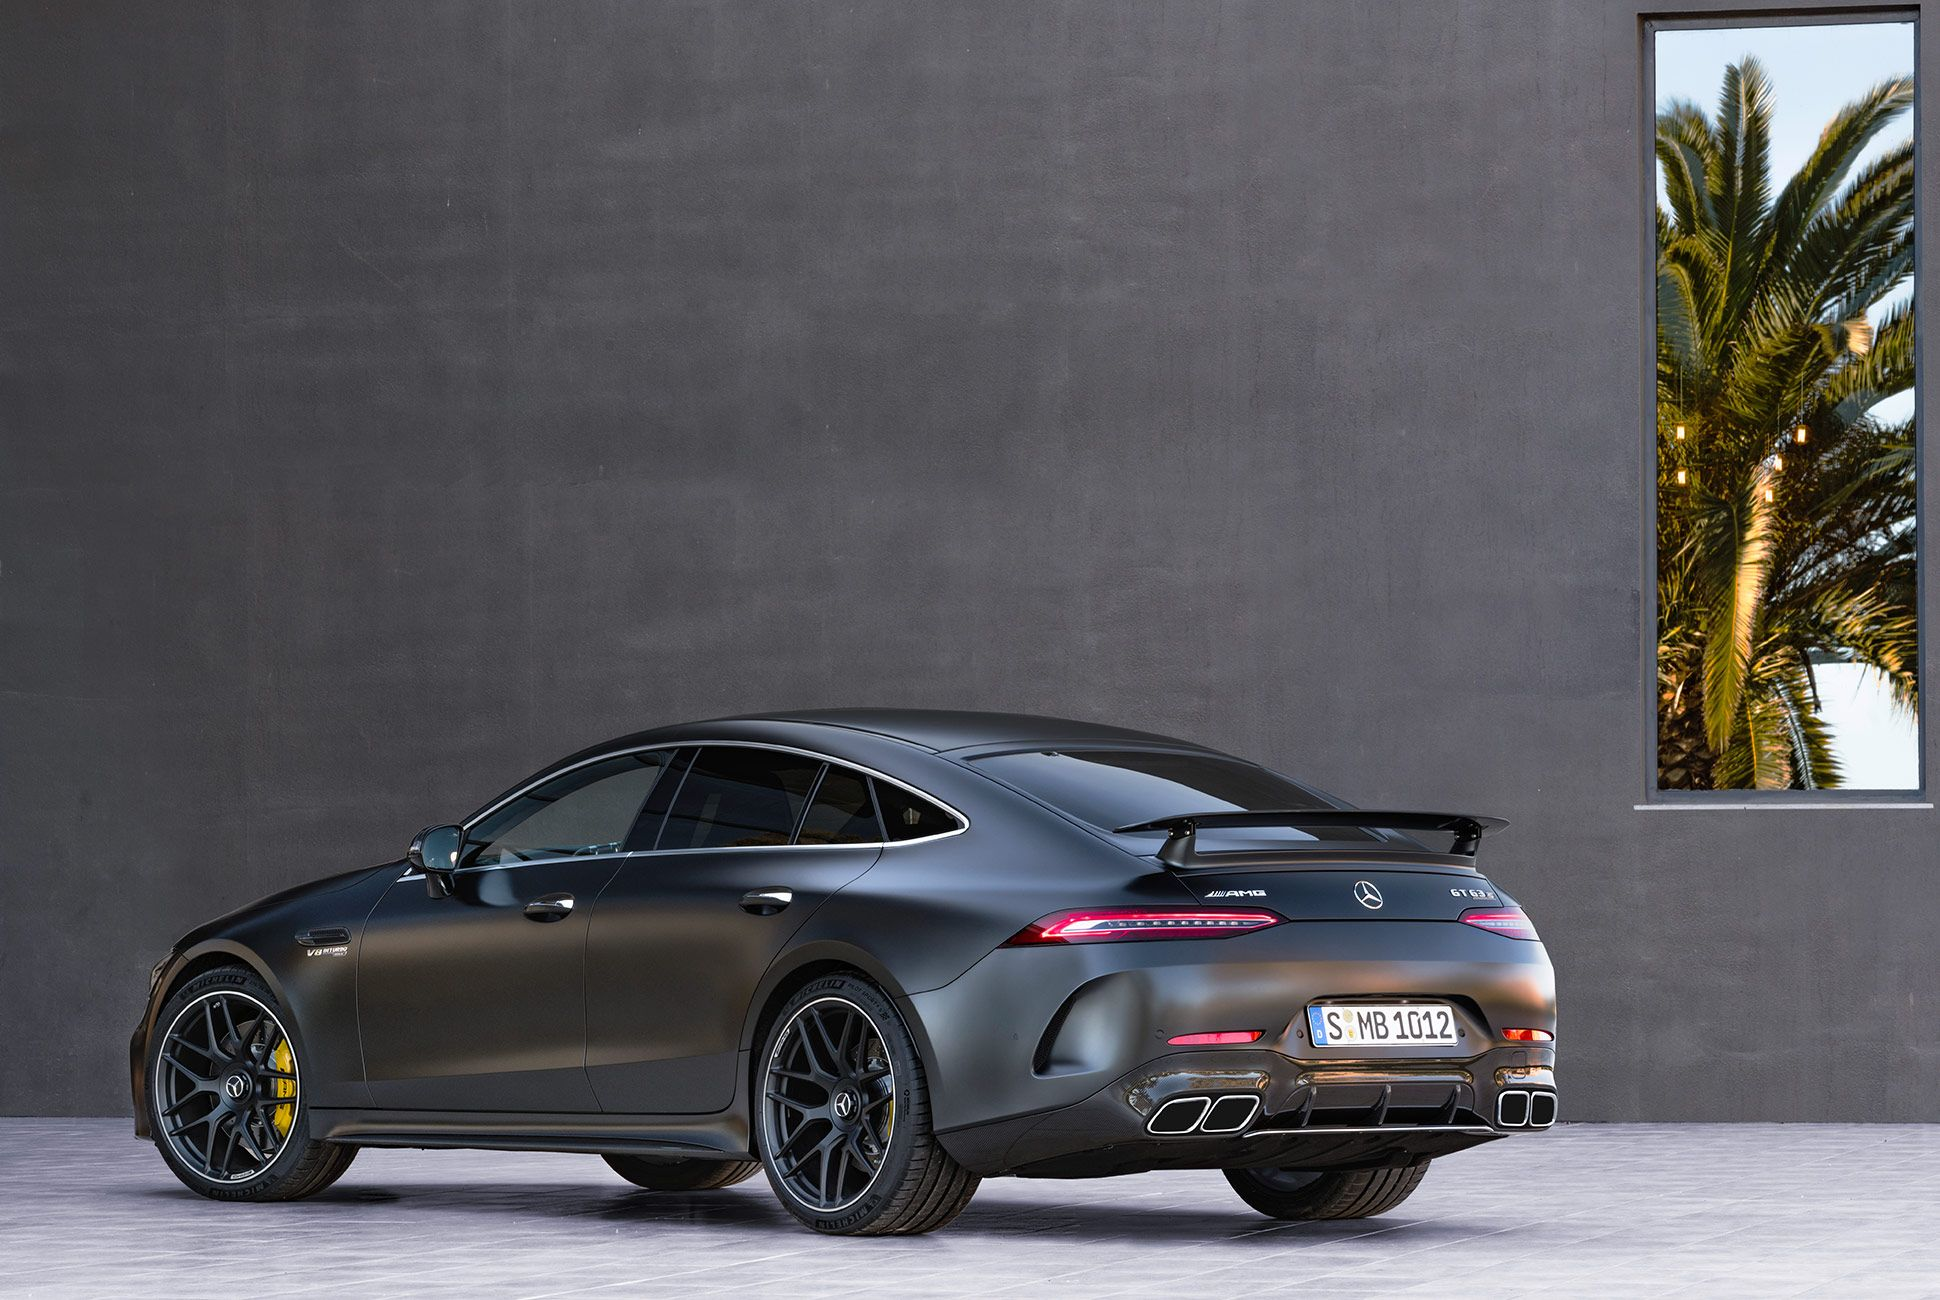 Mercedes Amg Gt 4 Door Coupe Photo Courtesy Of Mercedes Benz